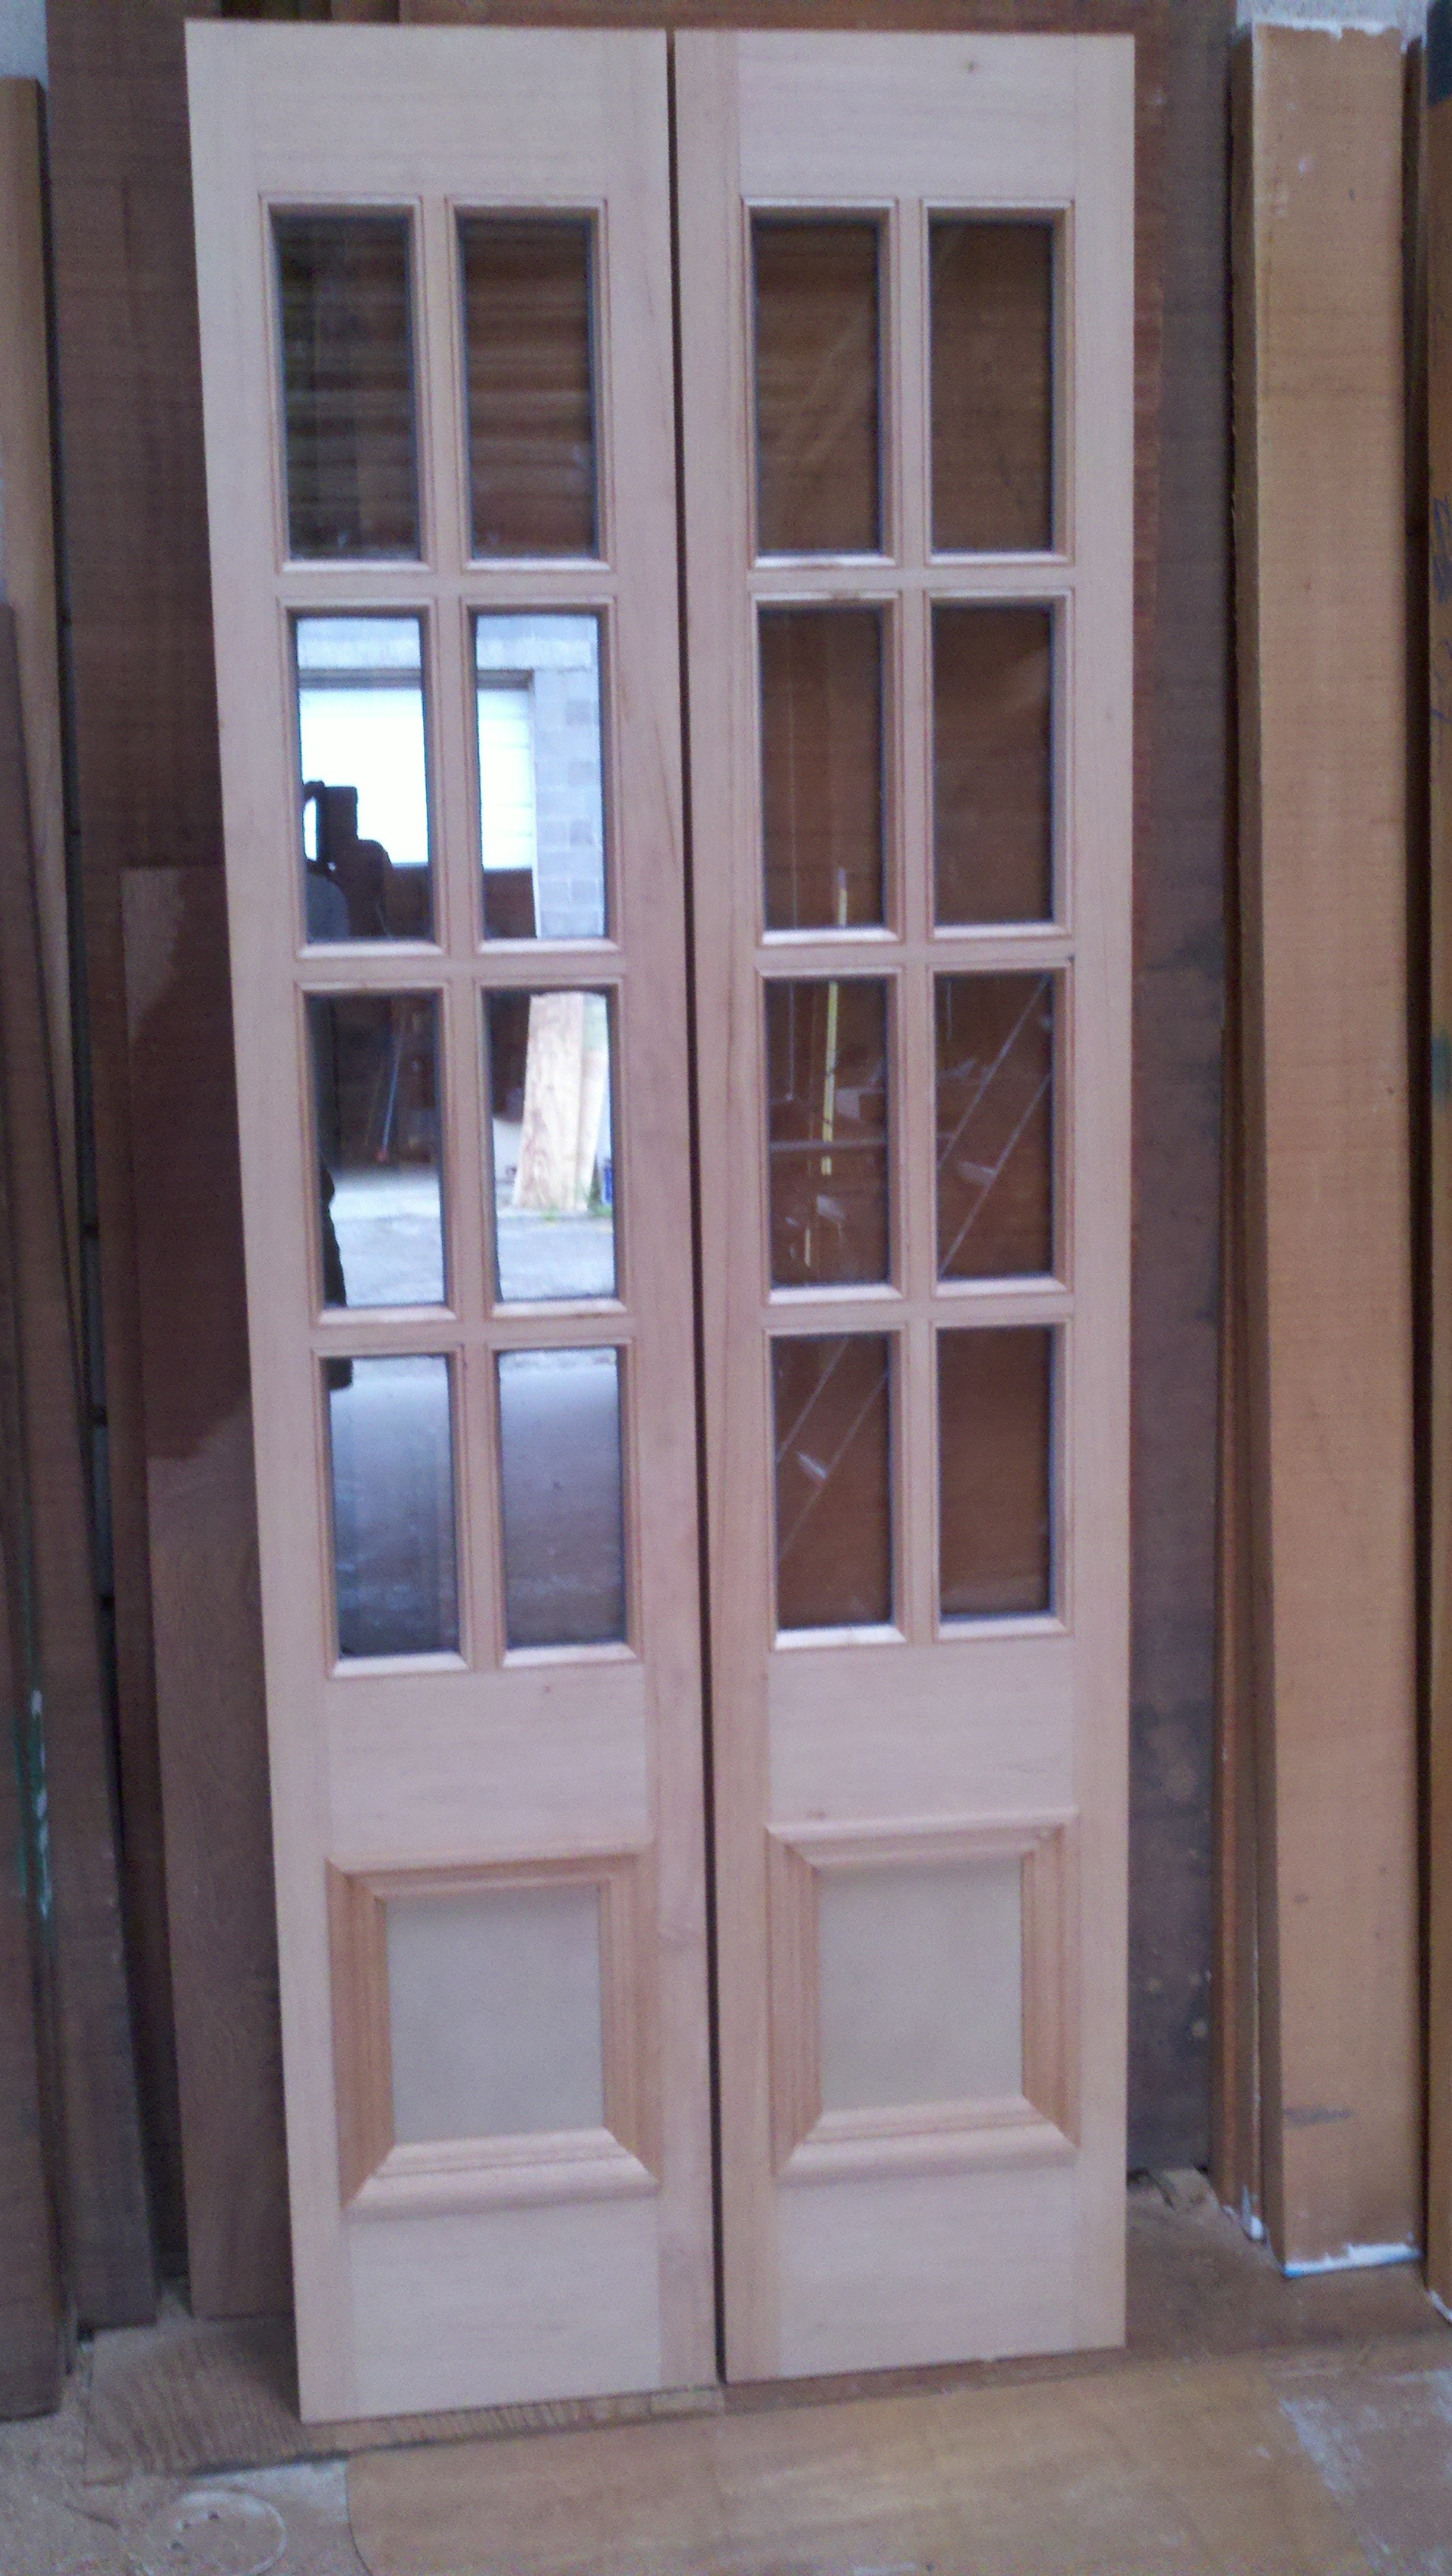 entry door with sidelights without handle in cream with ceramic floor and tan wall